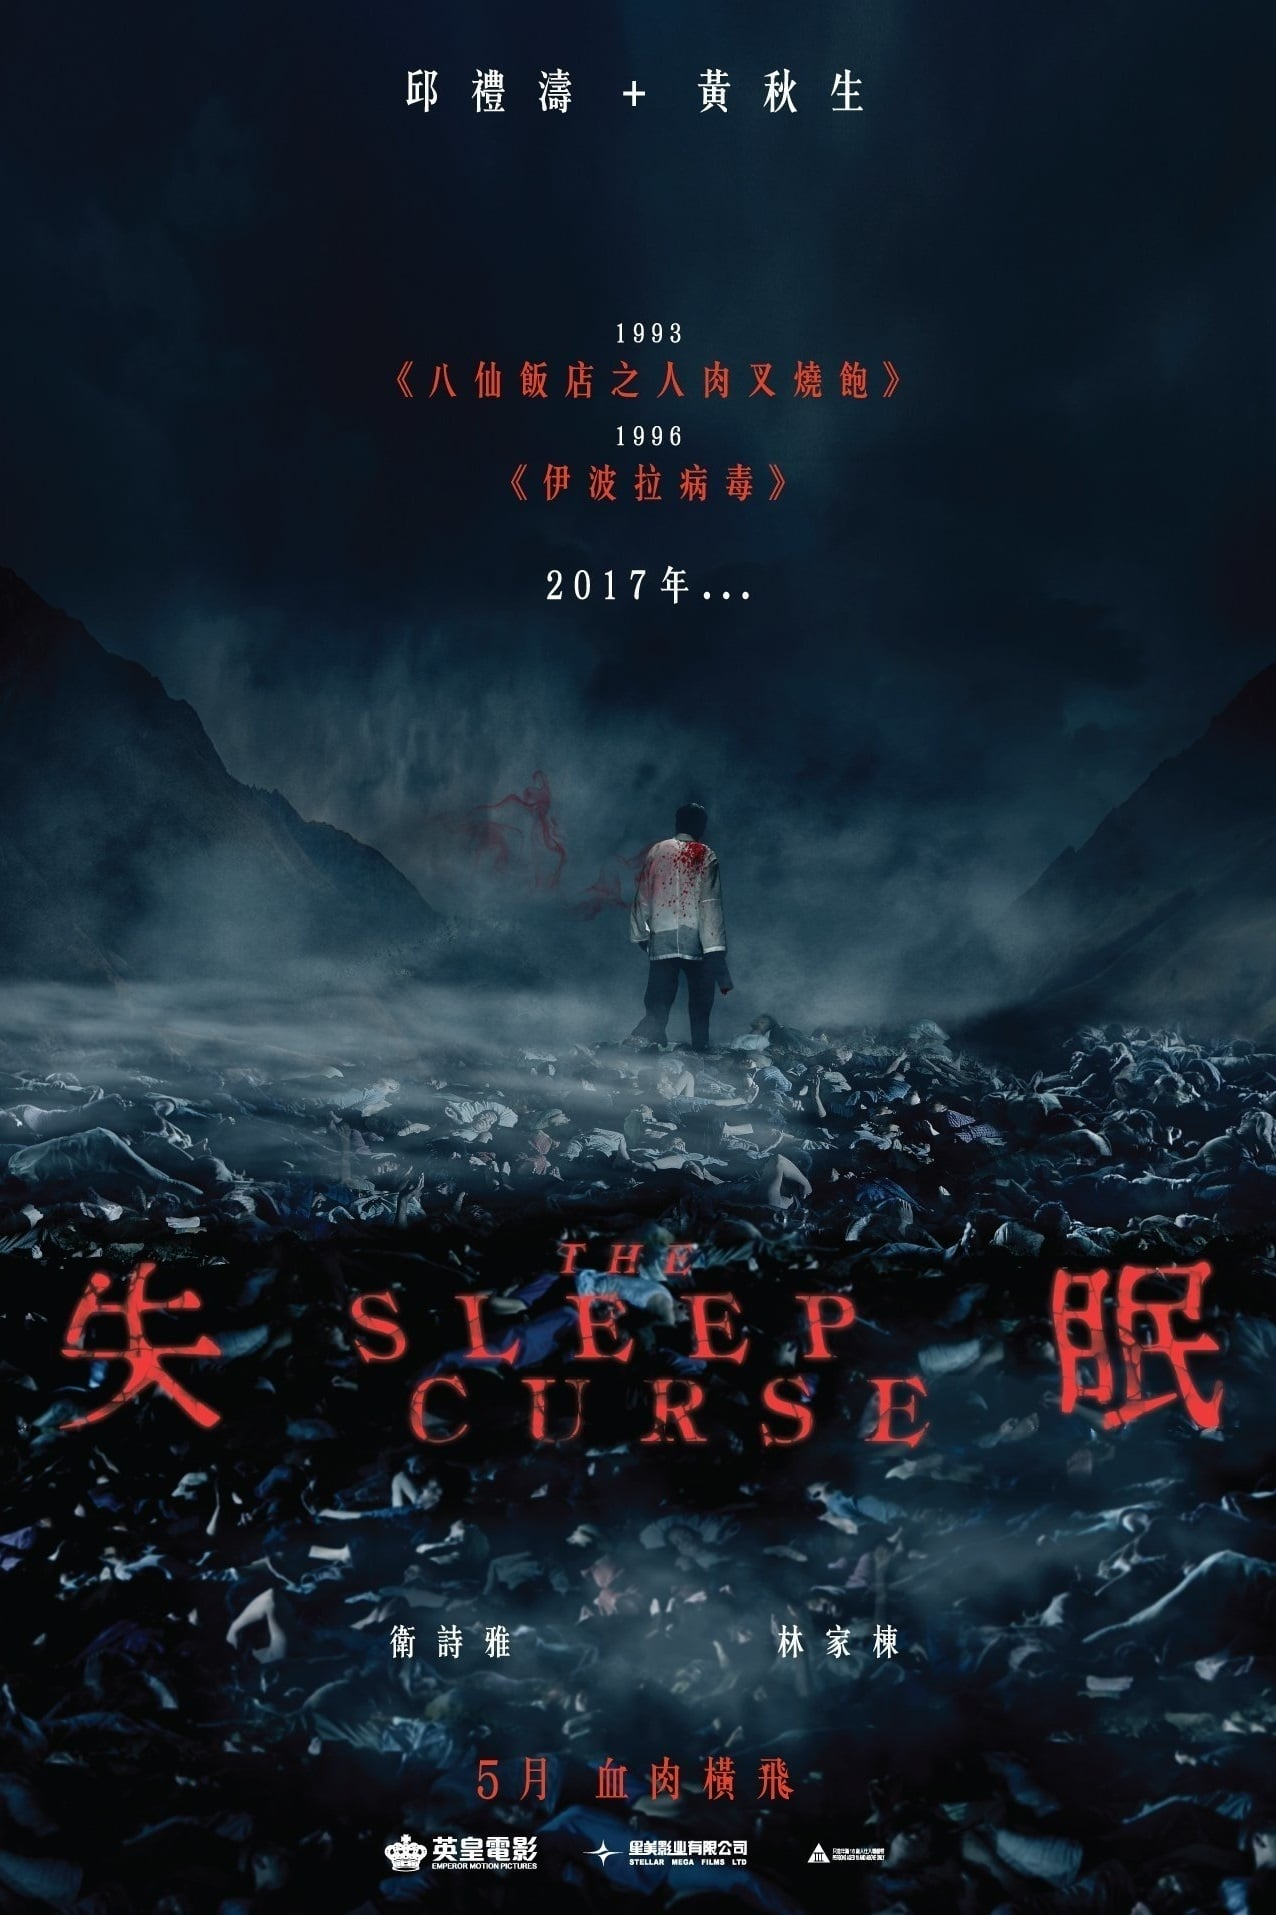 Assistir The Sleep Curse Legendado Online Legendado 1080p